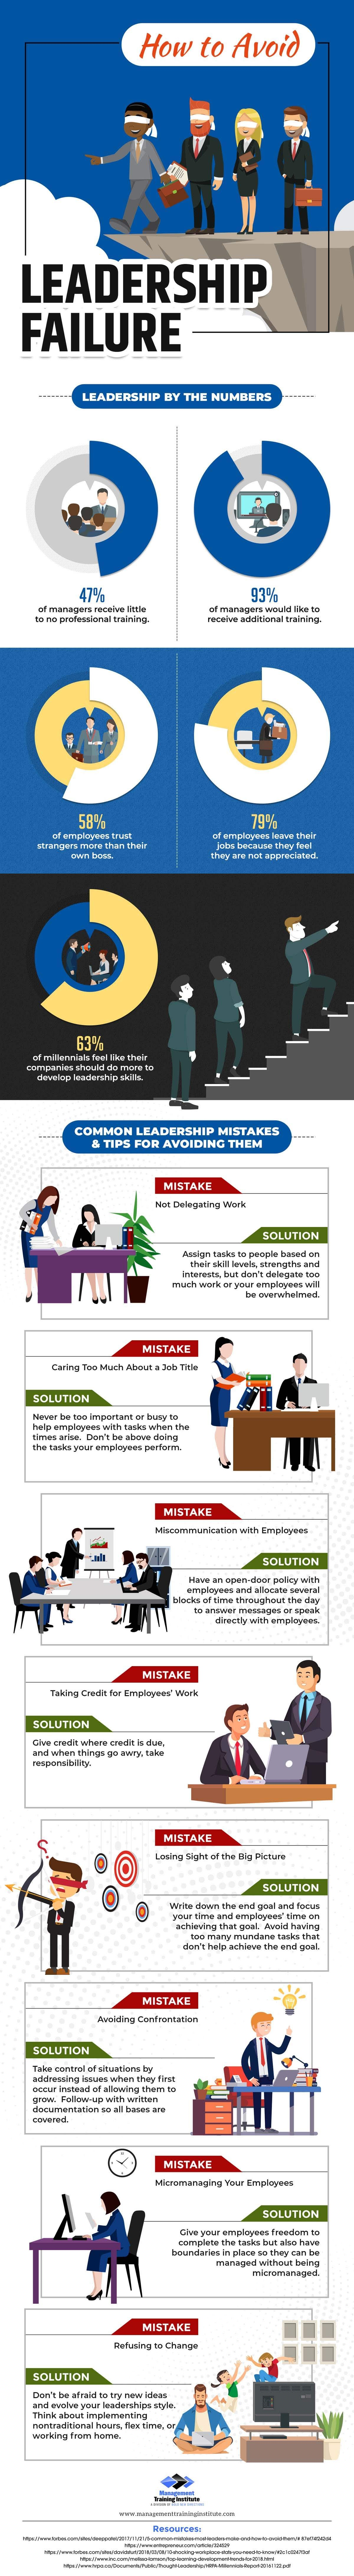 Leadership Failure info